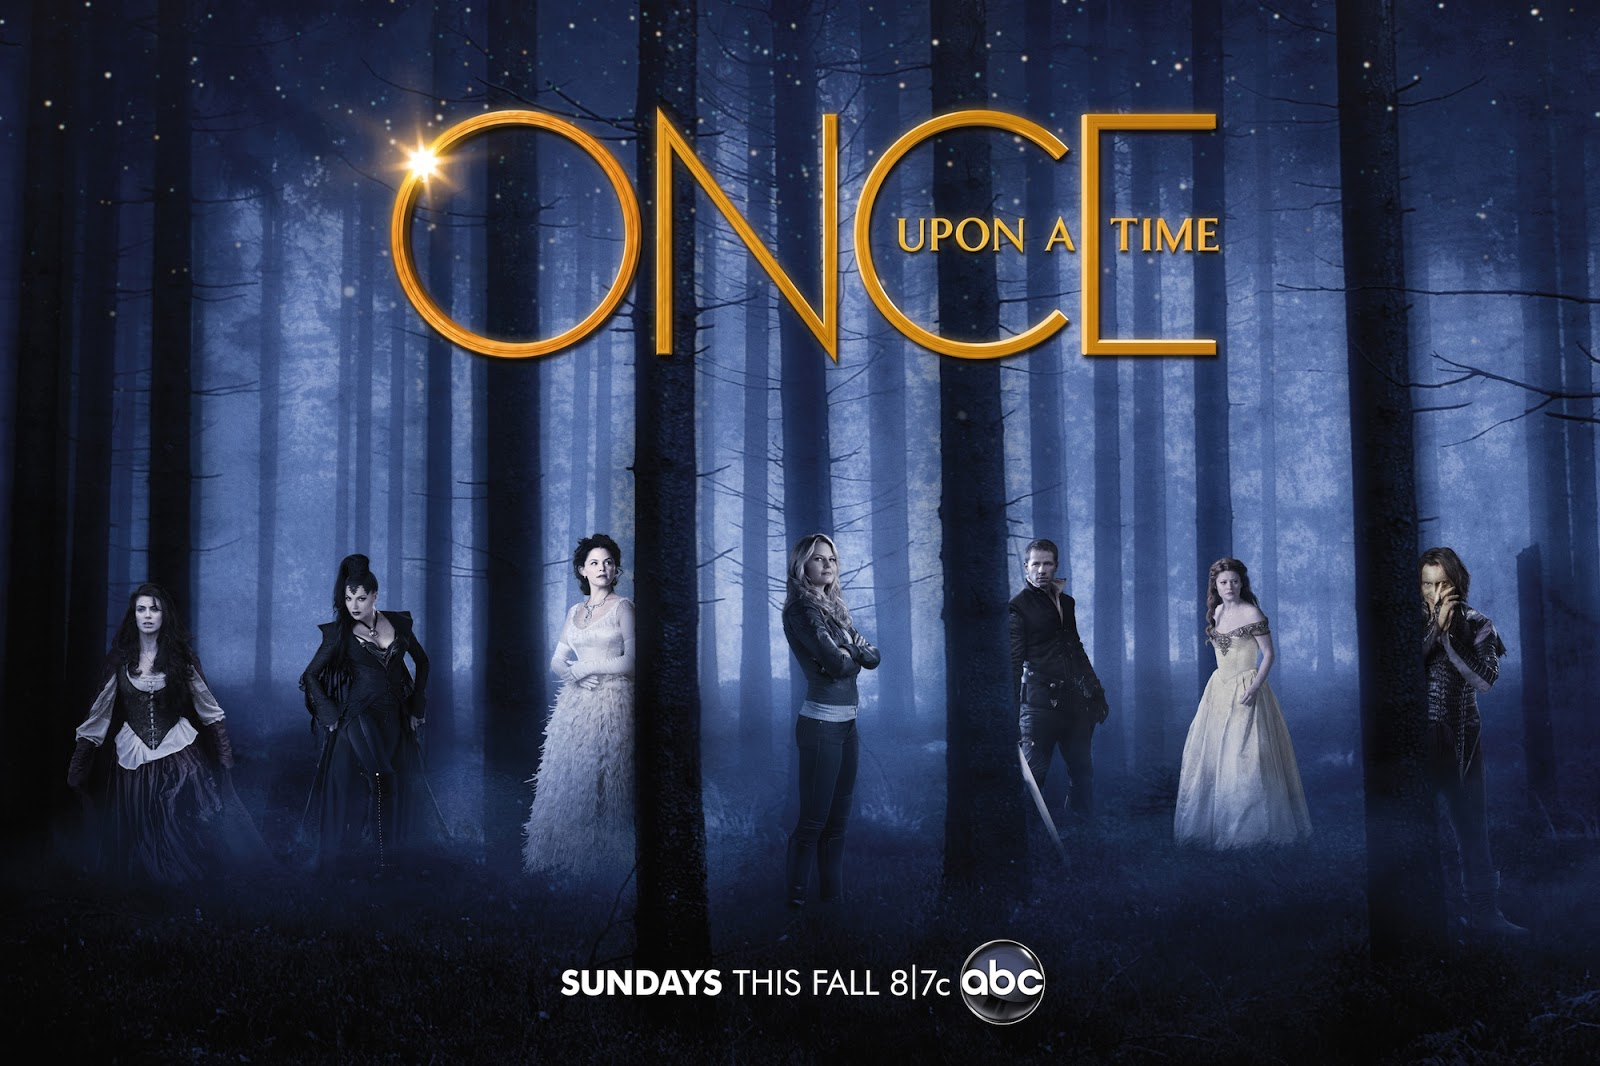 http://4.bp.blogspot.com/-iuRgpHNb4mk/UMbmR4UclcI/AAAAAAAAED0/IQ9QfMakIaw/s1600/Once-Upon-A-Time-Comic-Con-Poster-once-upon-a-time-31338152-2000-1333.jpg